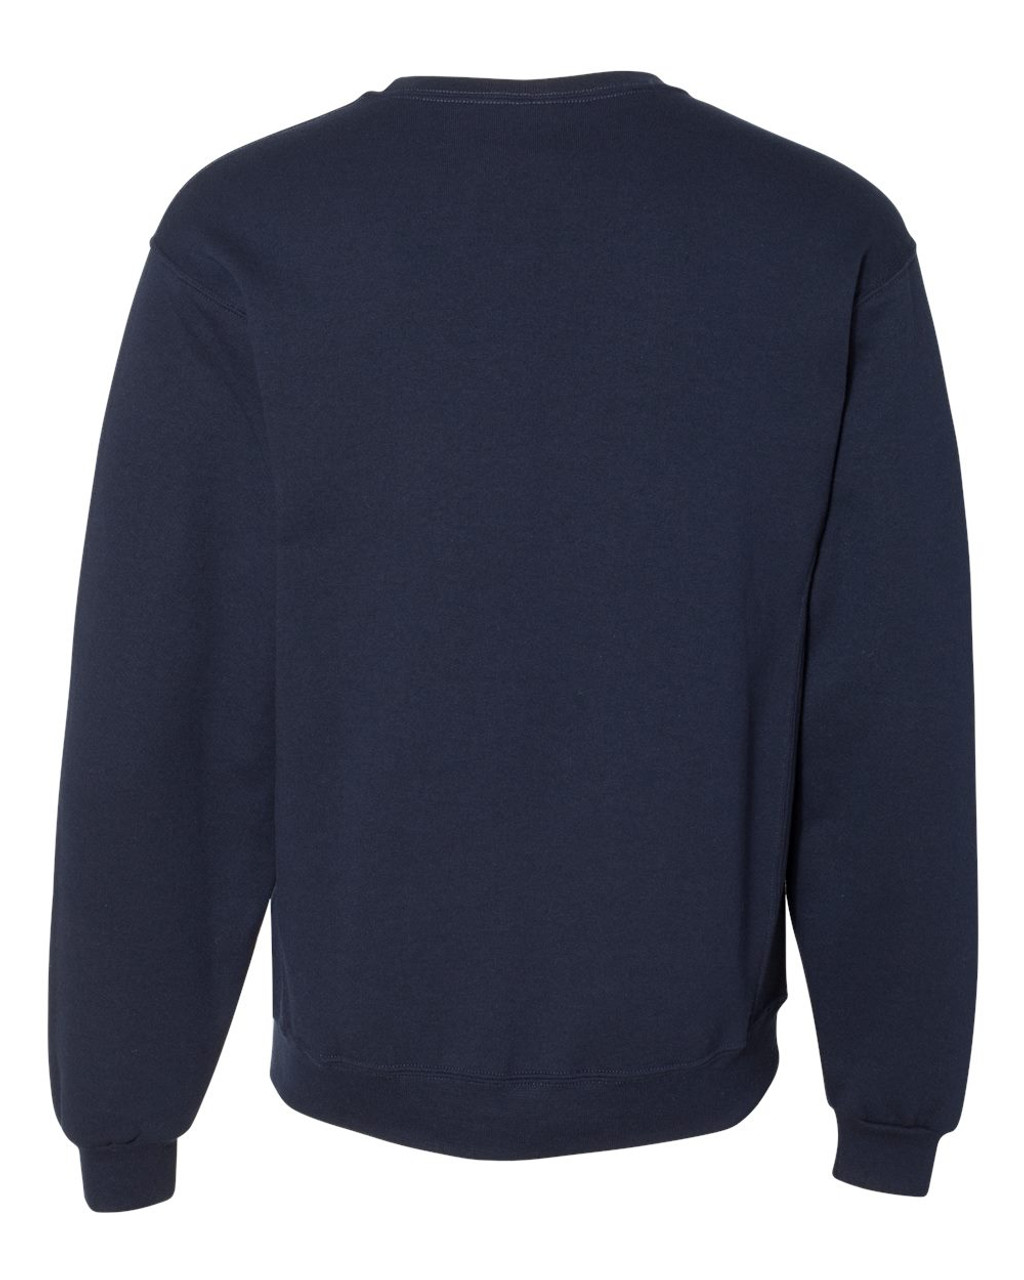 698HBM Russell Athletic Dri Power® Crewneck Sweatshirt | T-shirt.ca